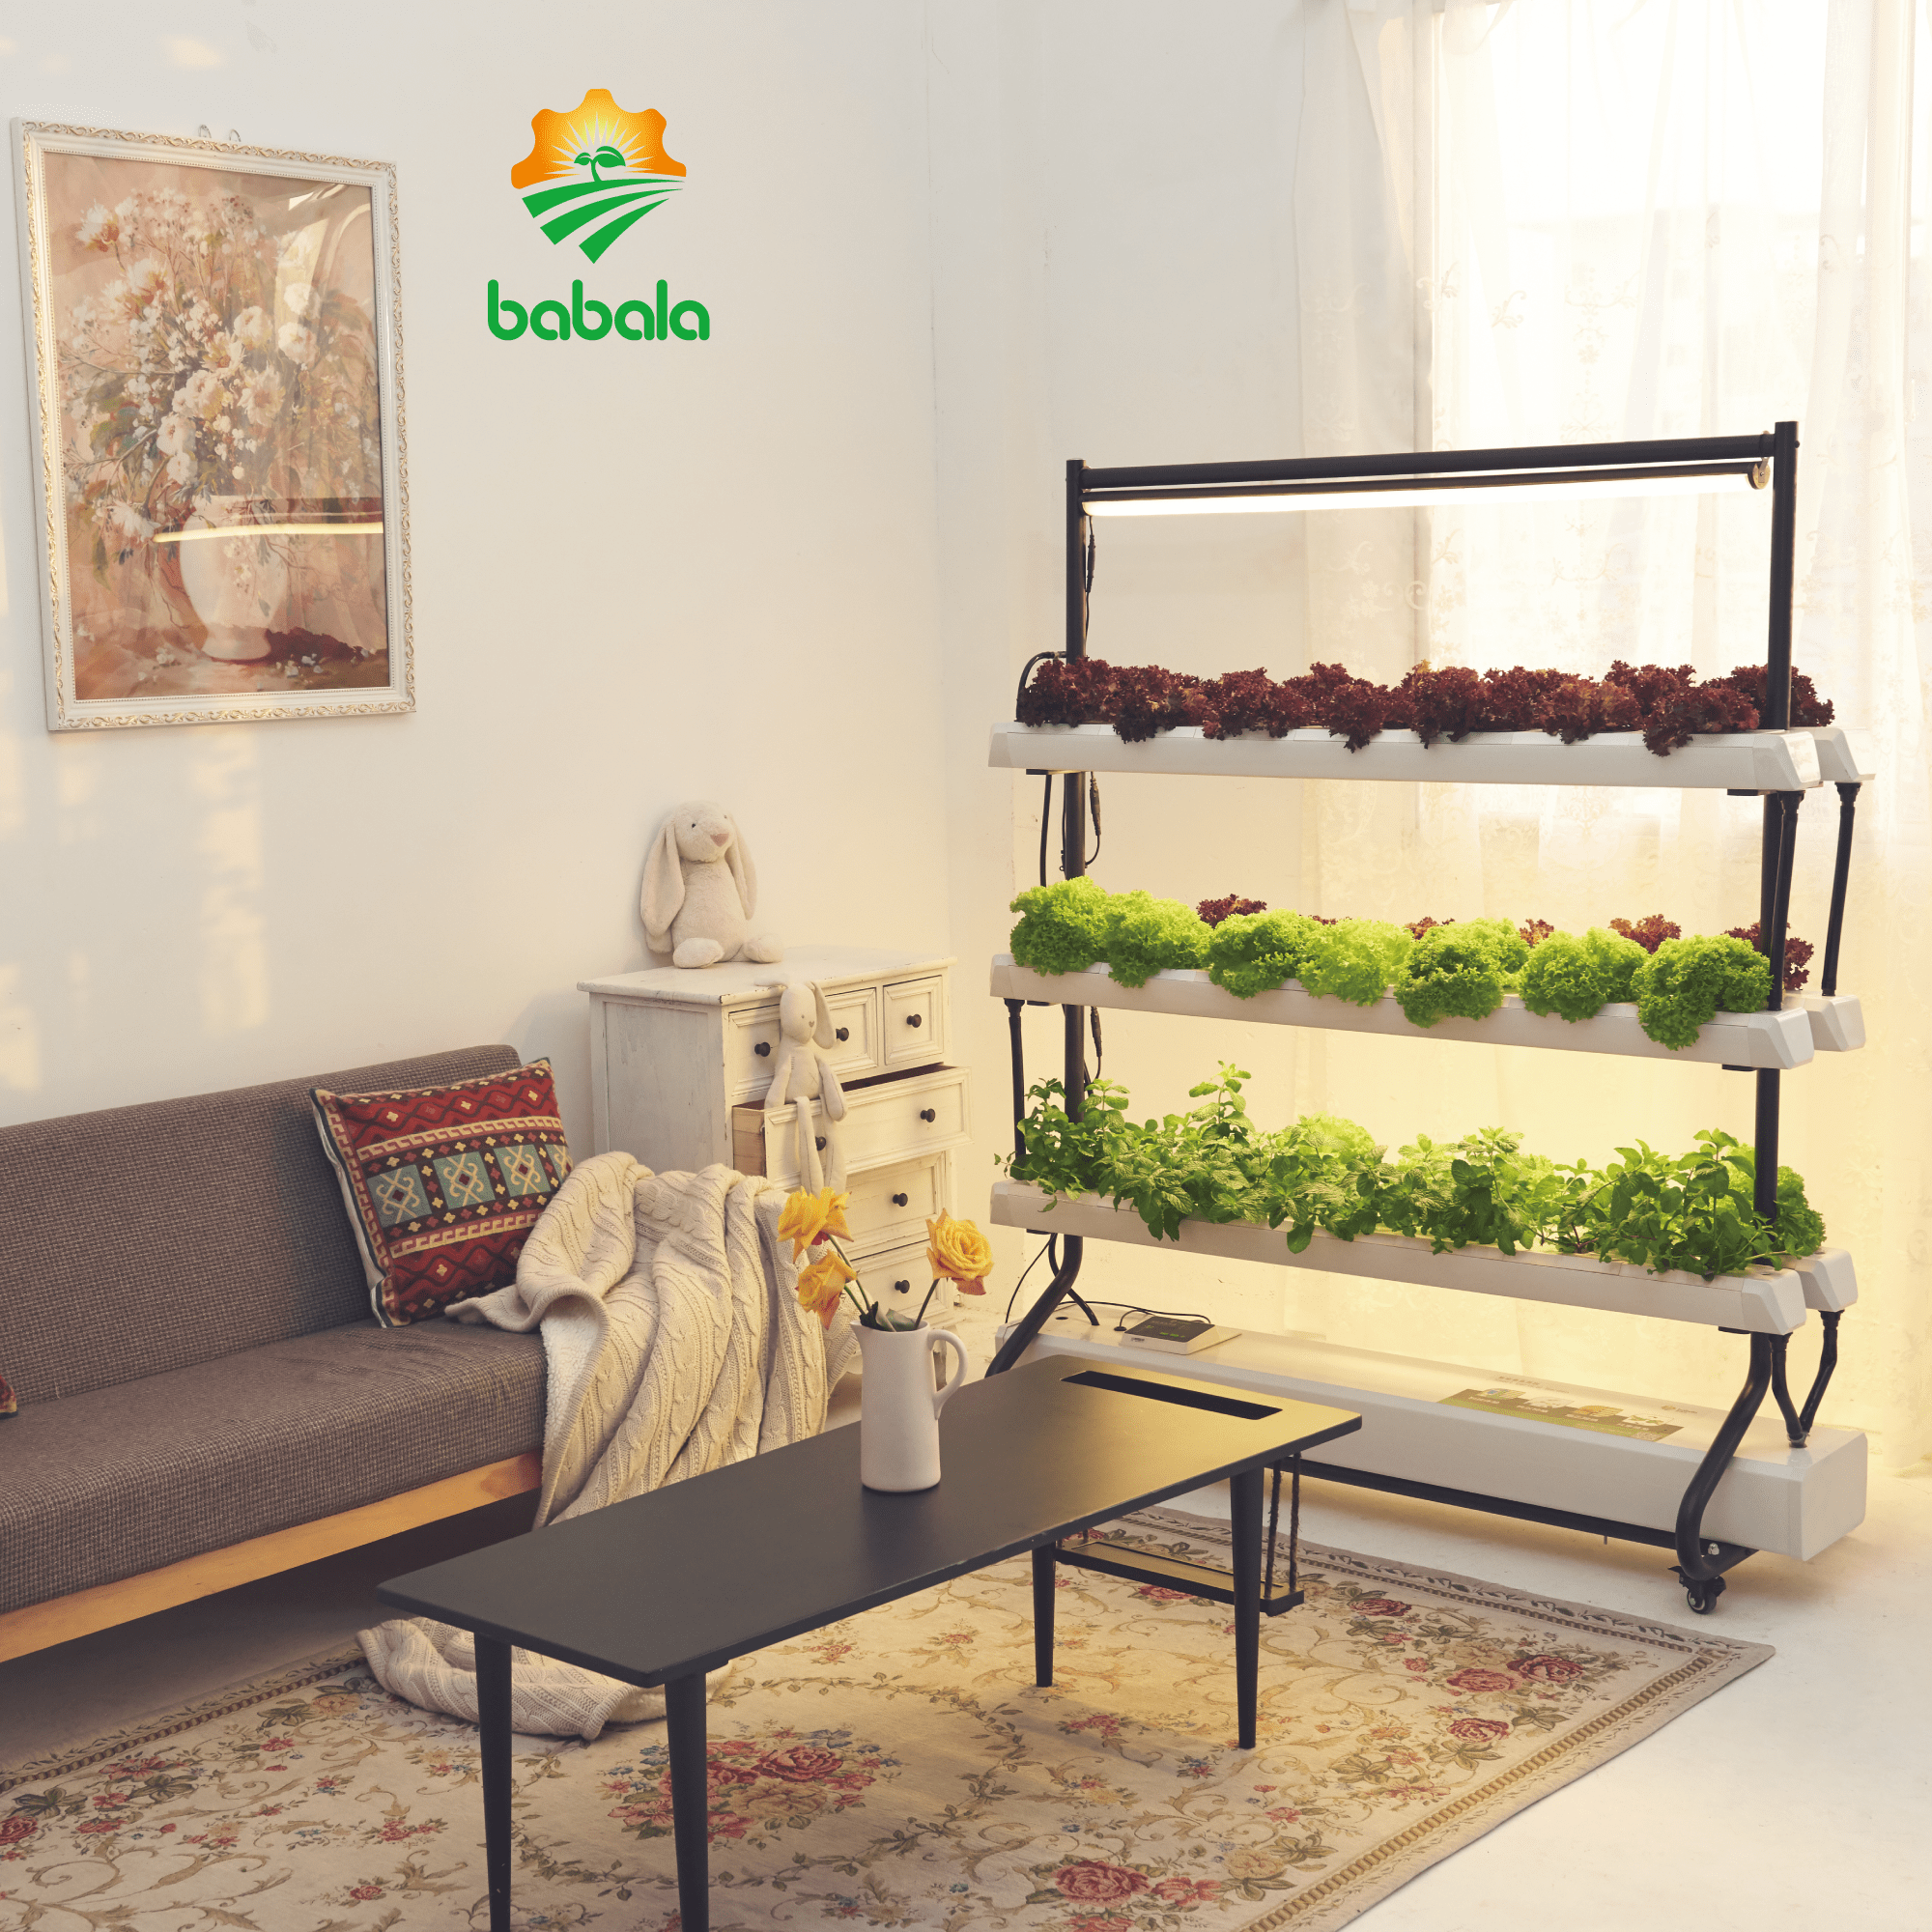 Smart Vertical Garden home hydroponic